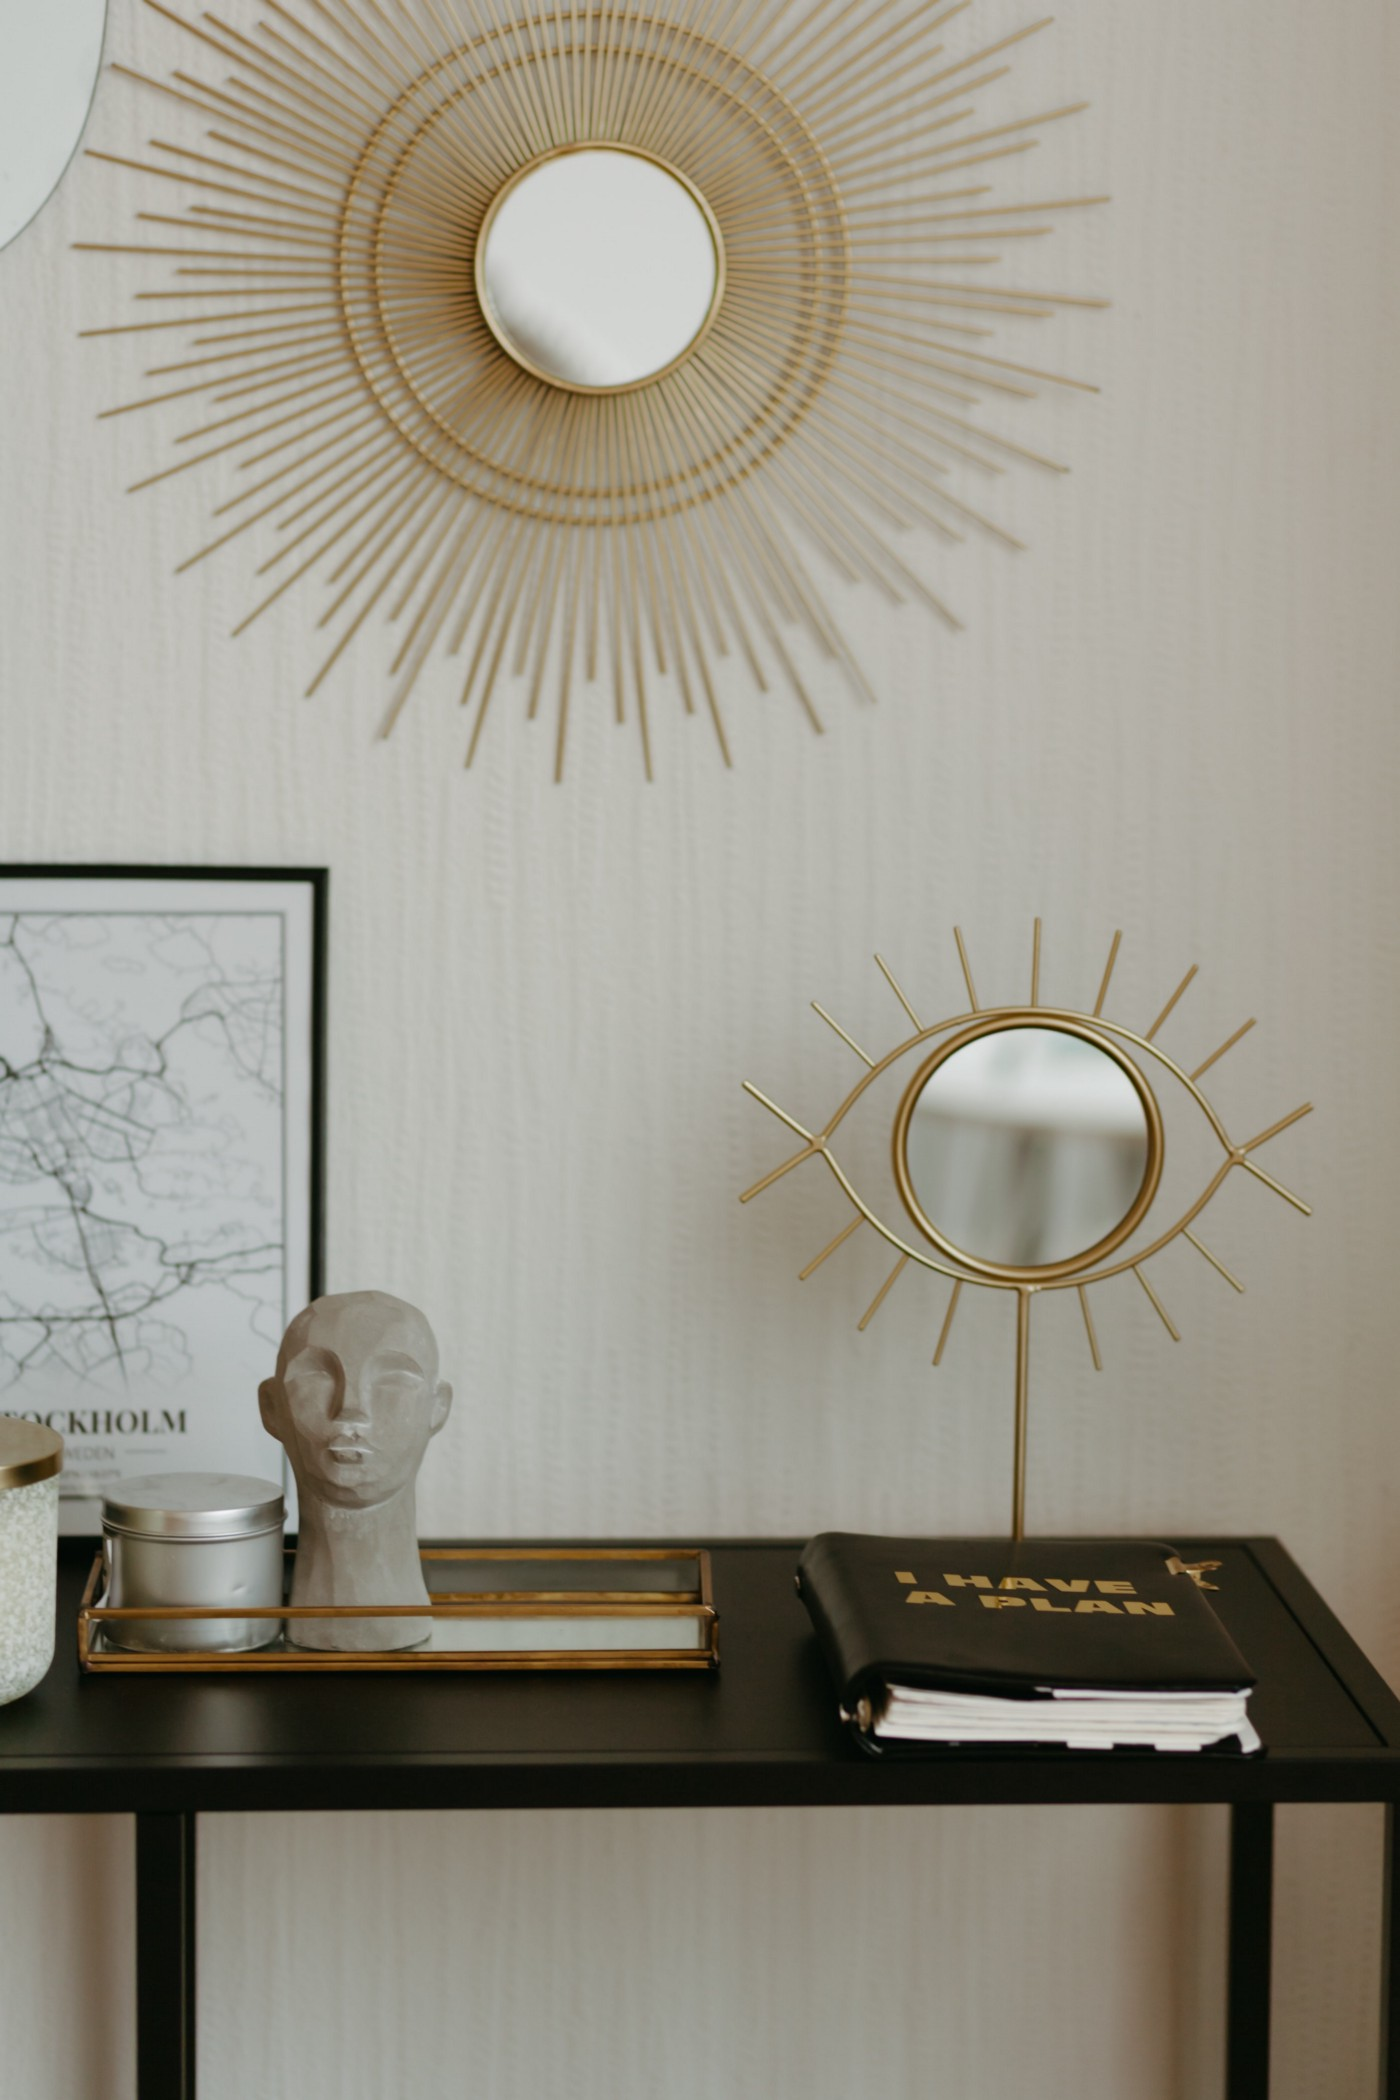 List of objects in this picture: Solar Disc Decor, Eyeball Mirror, Map of Stockholm, Sculptural Bust, Tins, Tray, Table, Wall, and A Book whose cover reads: I Have A Plan.